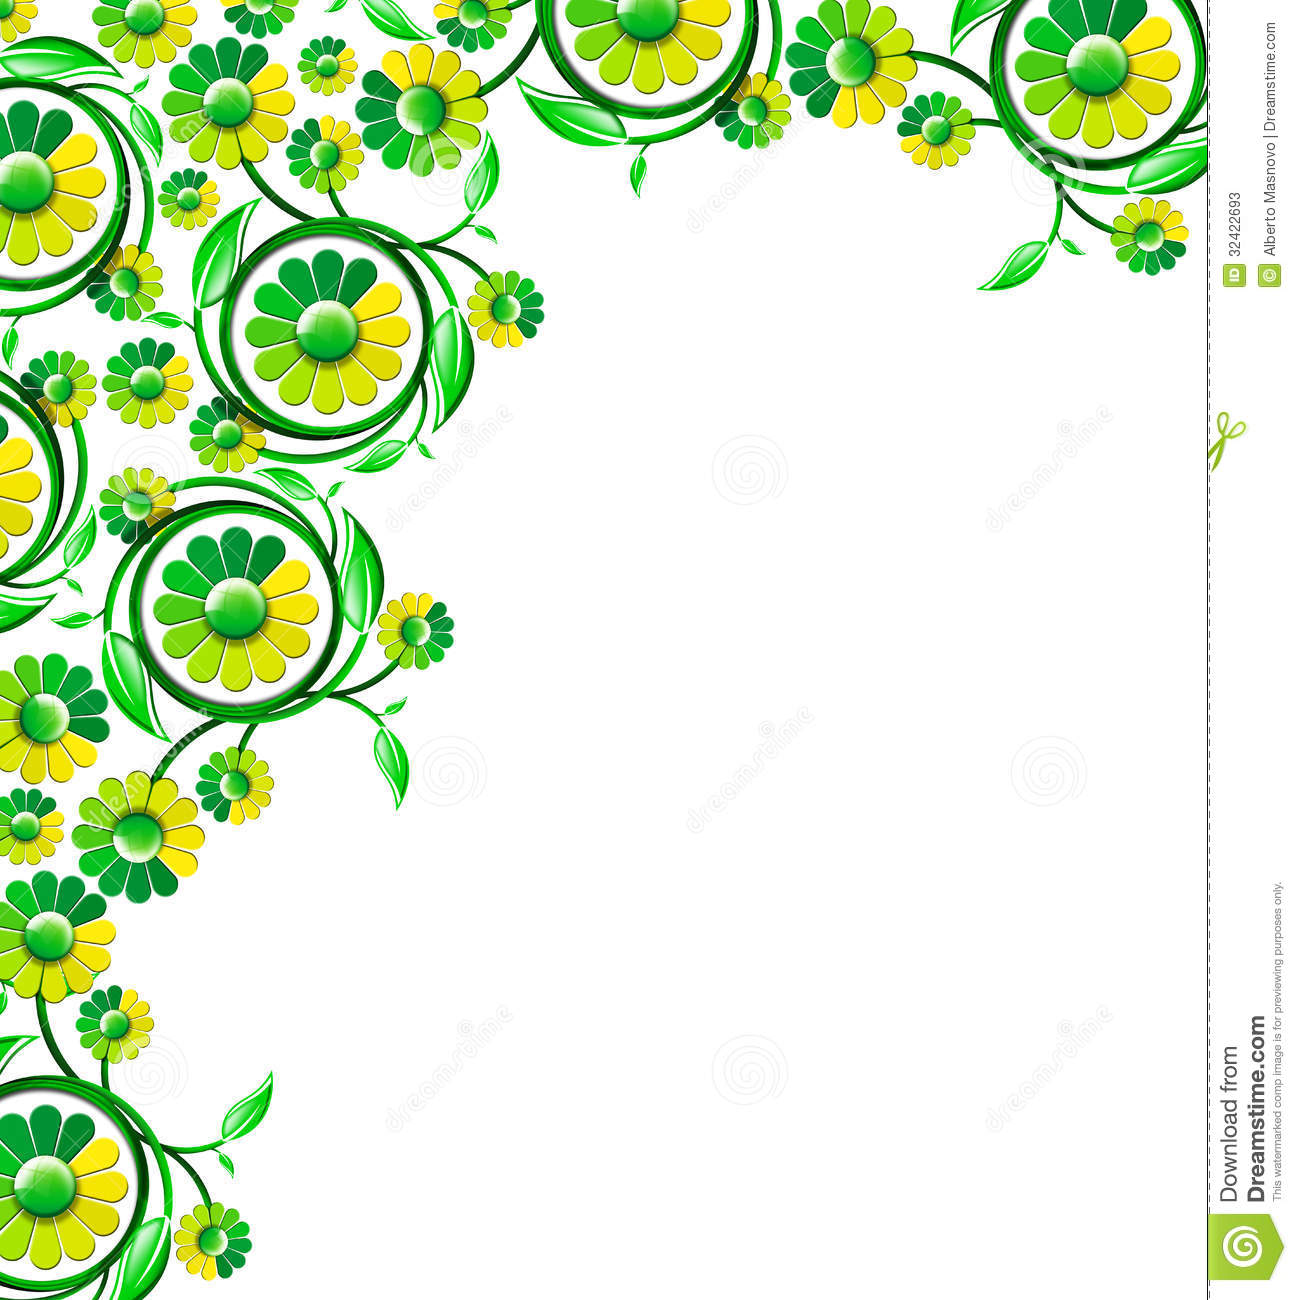 Green Leaves White Background | Clipart Panda - Free ...